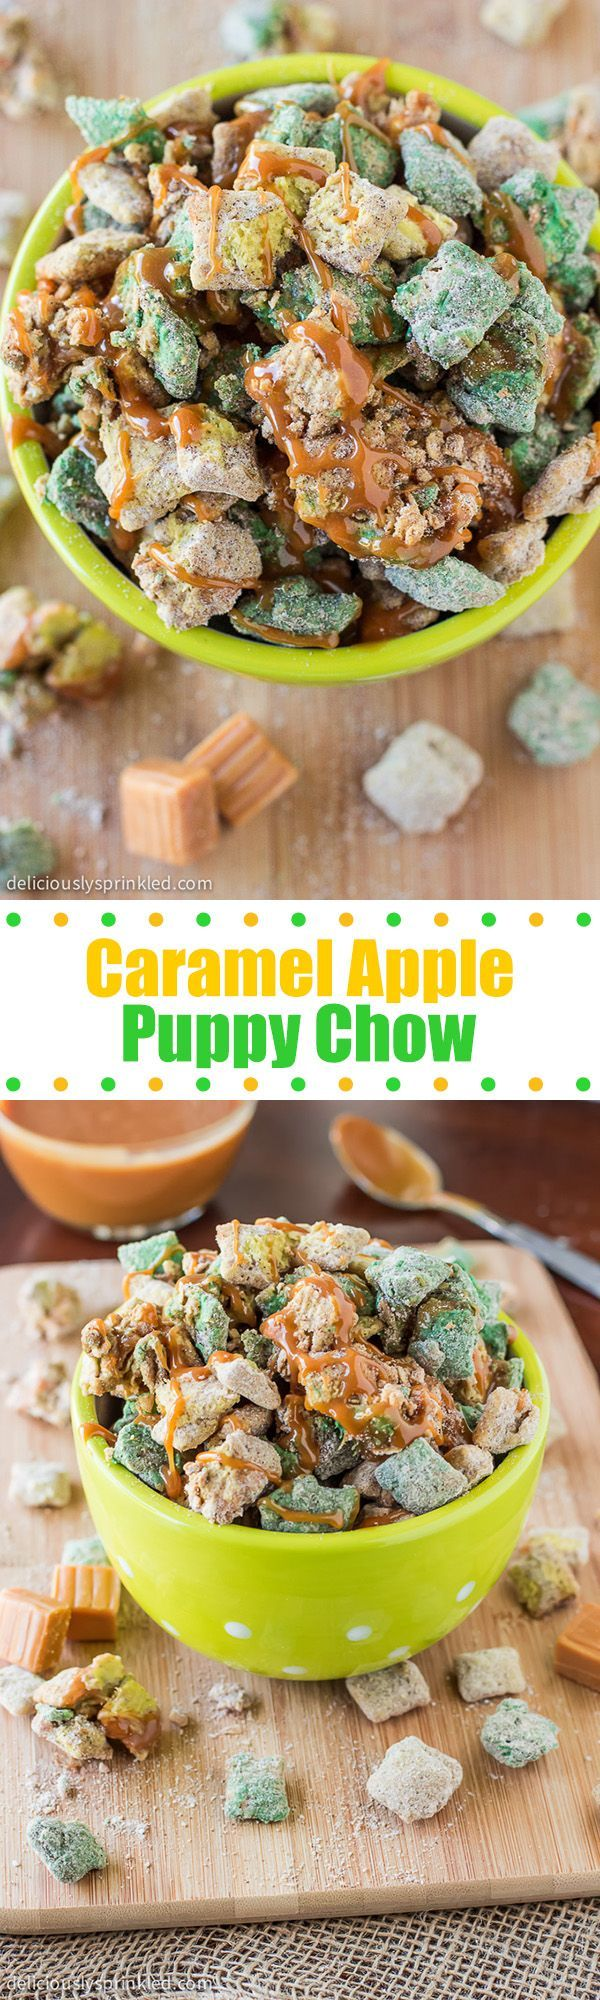 Caramel Apple Puppy Chow- all the flavors you love from a caramel apple in this puppy chow snack!